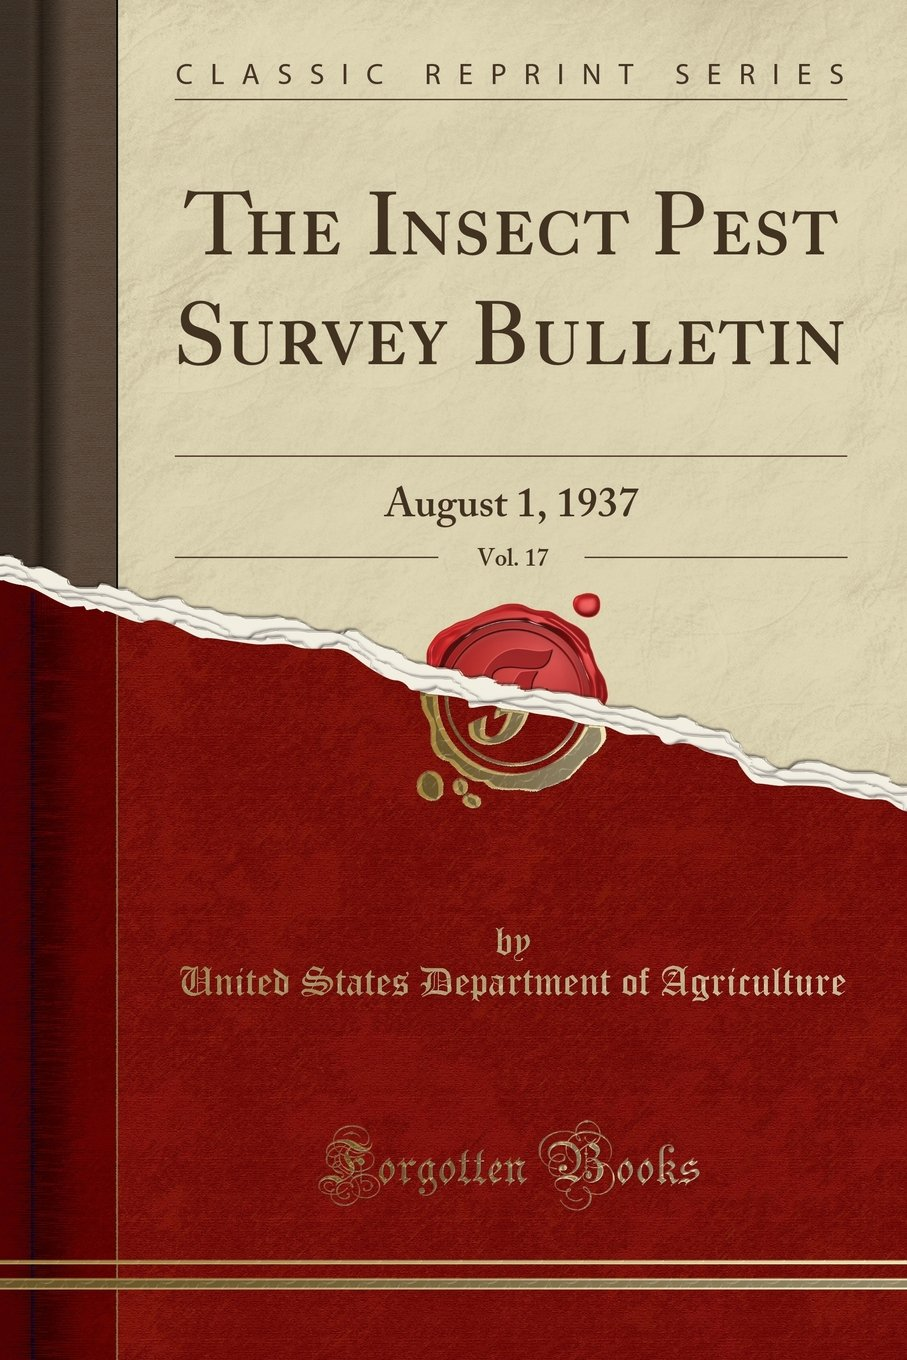 The Insect Pest Survey Bulletin, Vol. 17: August 1, 1937 (Classic Reprint) PDF